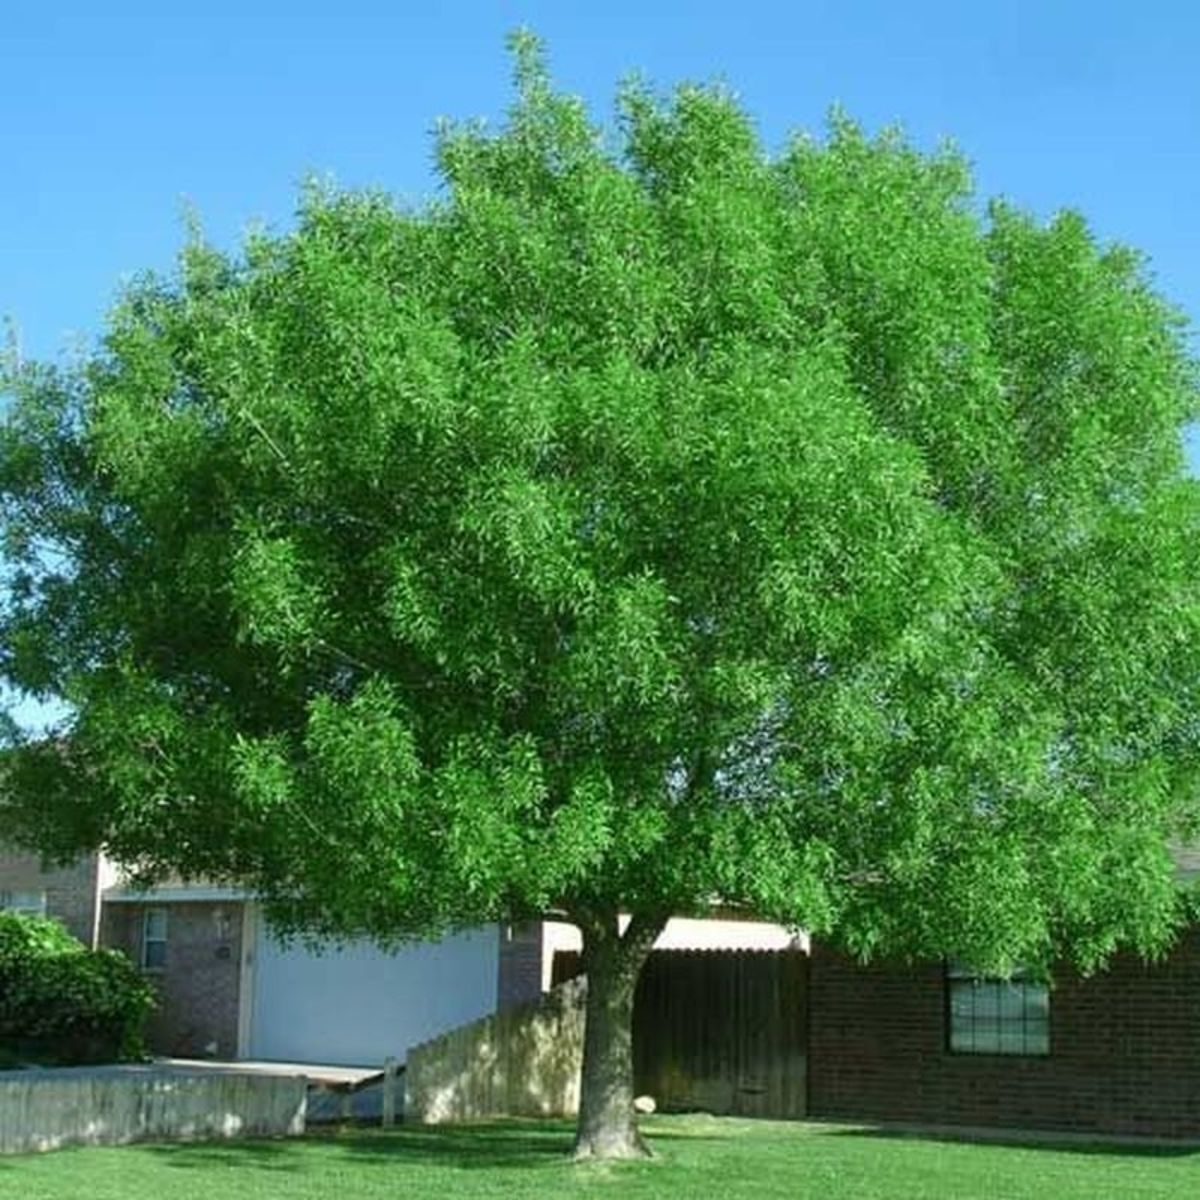 This Arizona ash is deciduous and drops leaves and thorns during the fall.